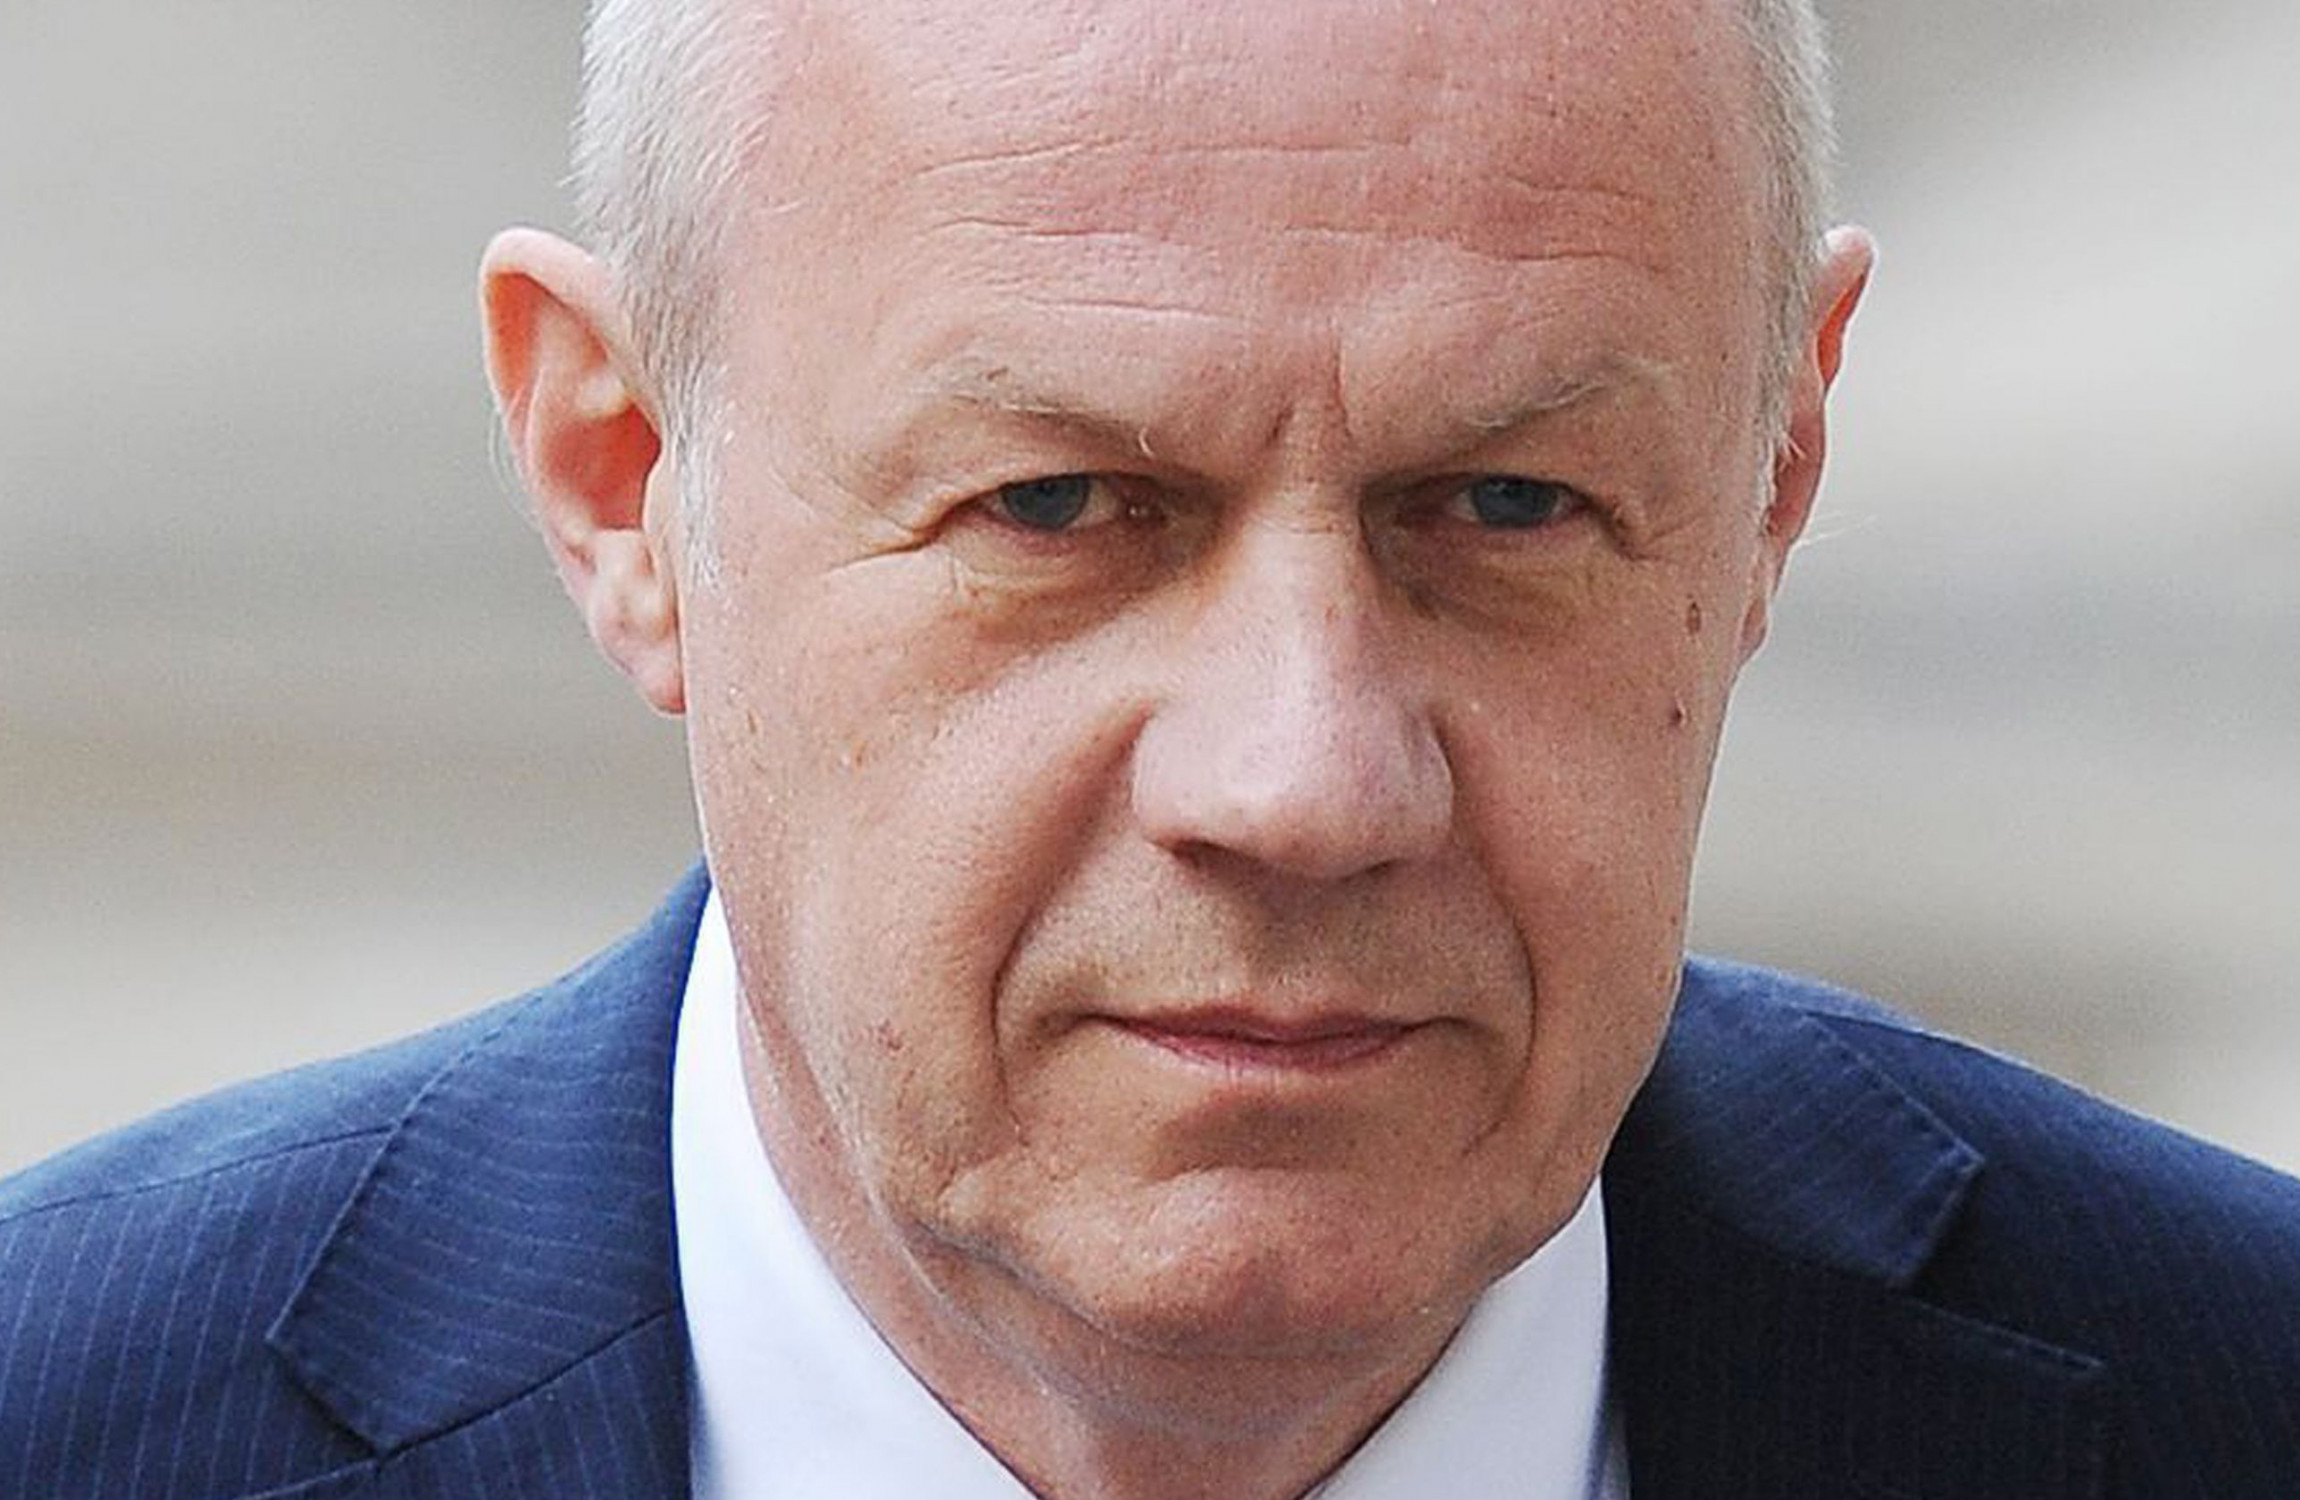 Damian Green resigns as first secretary of state after porn allegations